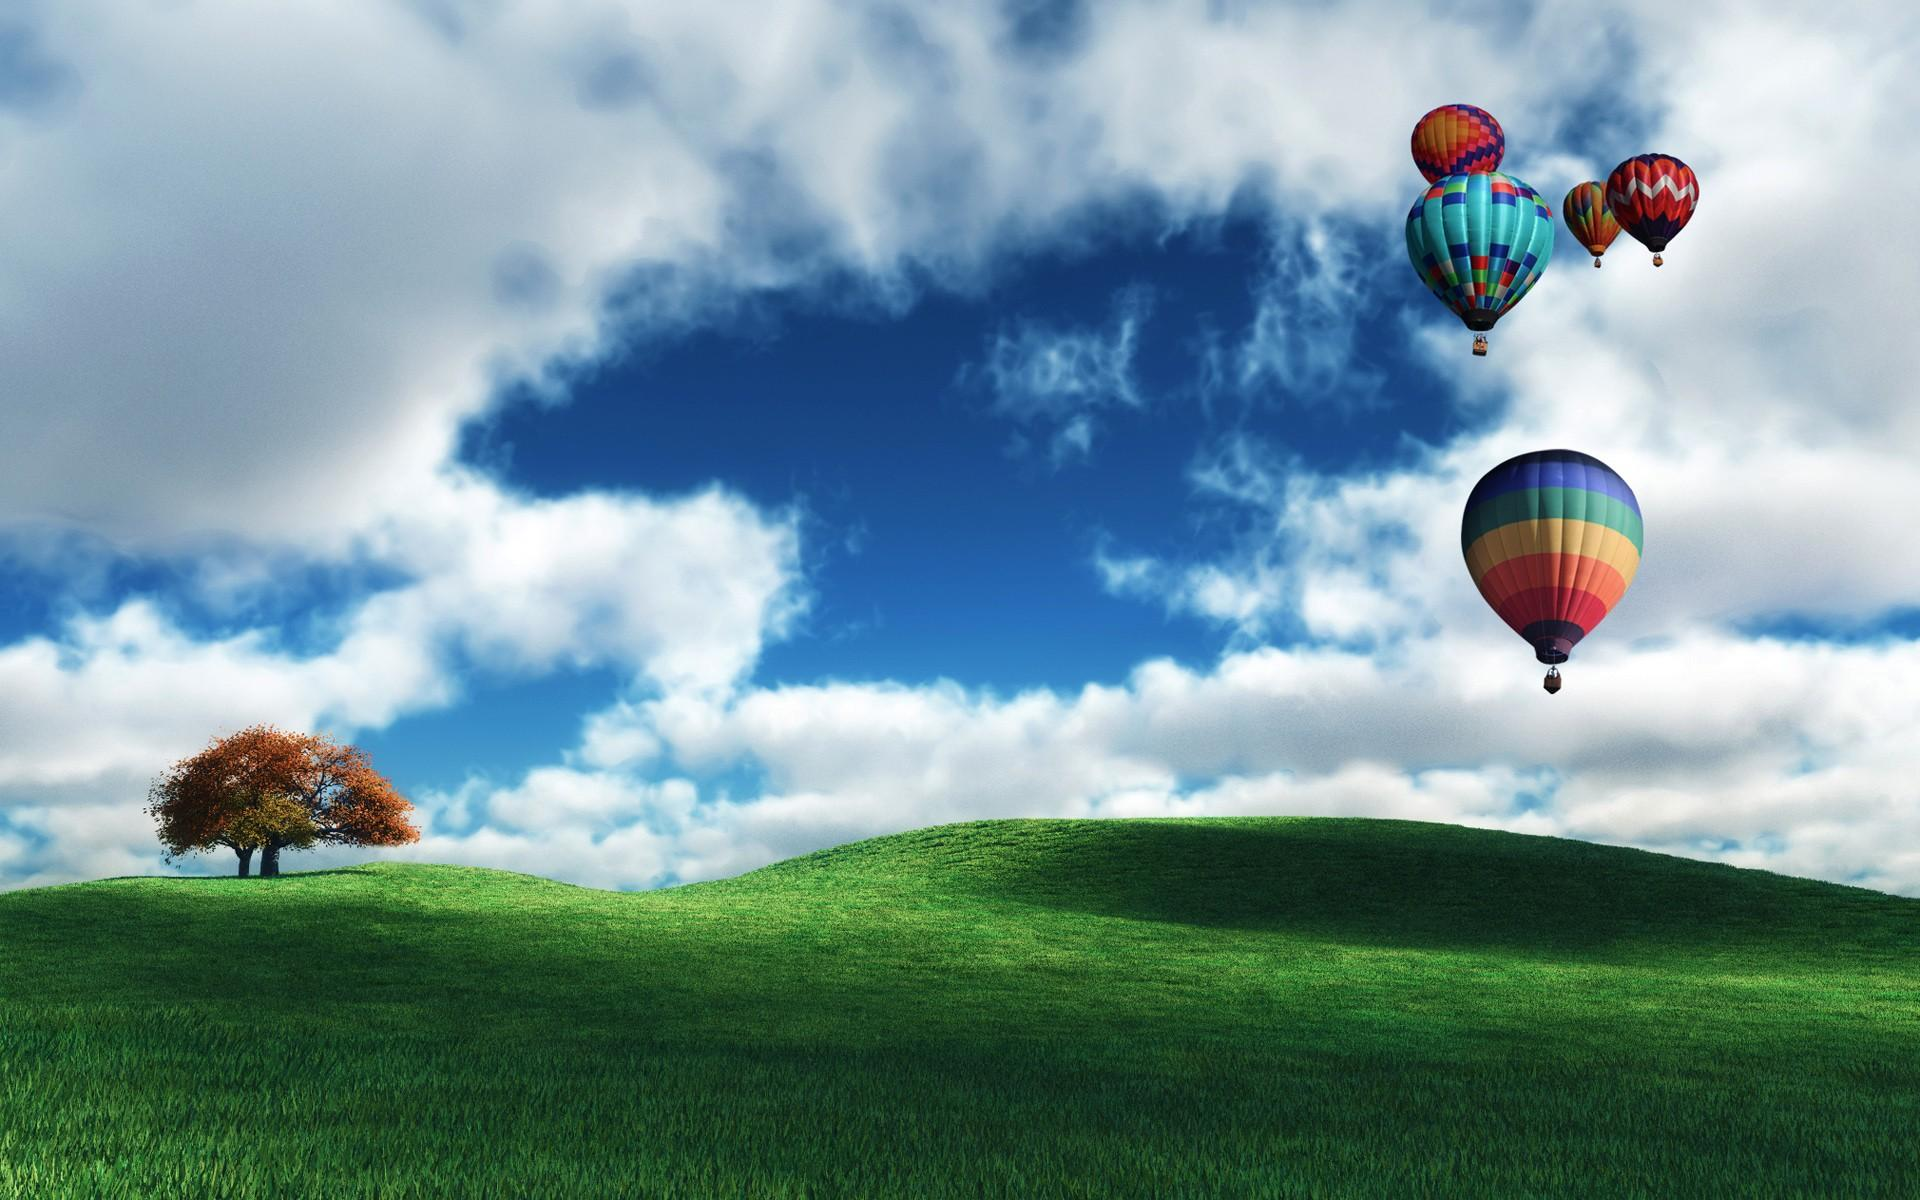 Wallpapers Hd: Balloons HD Wallpapers